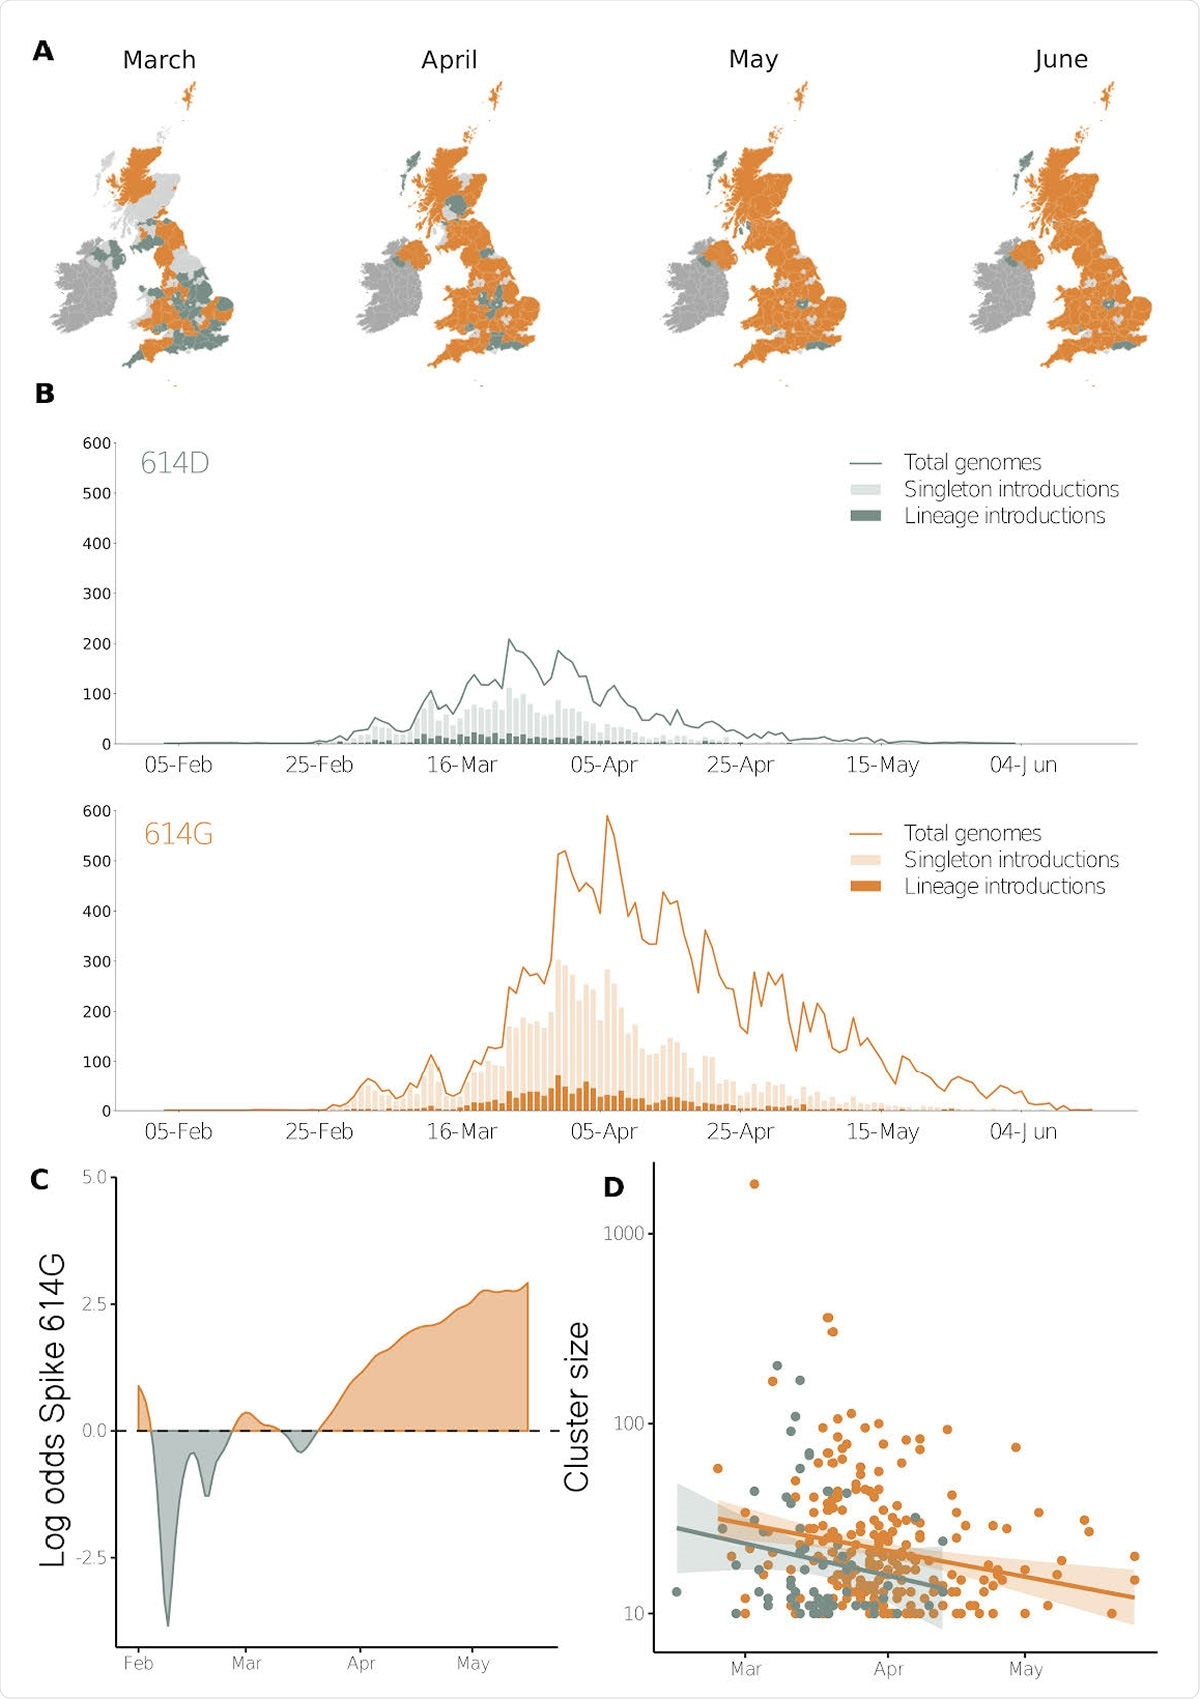 Geographic and temporal distribution of Spike 614 amino acid D or replacement G and time of lineage introductions into the United Kingdom. A) Shaded regions show the predominant residue in each region on the 15th of each month for March, April, May and June 2020, with orange indicating that 614G was more sampled and green indicating that 614D was more sampled, or that they were equally sampled. Light grey indicates that no sequences had been sampled by that point in time, and dark grey indicates the Republic of Ireland. B) The time when an introduction is first detected in the United Kingdom for Spike variants 614D and 614G. Singleton introductions are sampled exactly once and not observed subsequently, and lineage introductions gave rise to multiple sampled genomes. Solid lines show the total number of sequences collected by day of each 614 variant. C) The log odds of sampling a Spike 614G variant over time. D) The size of cluster versus time of first sample collected within a cluster.